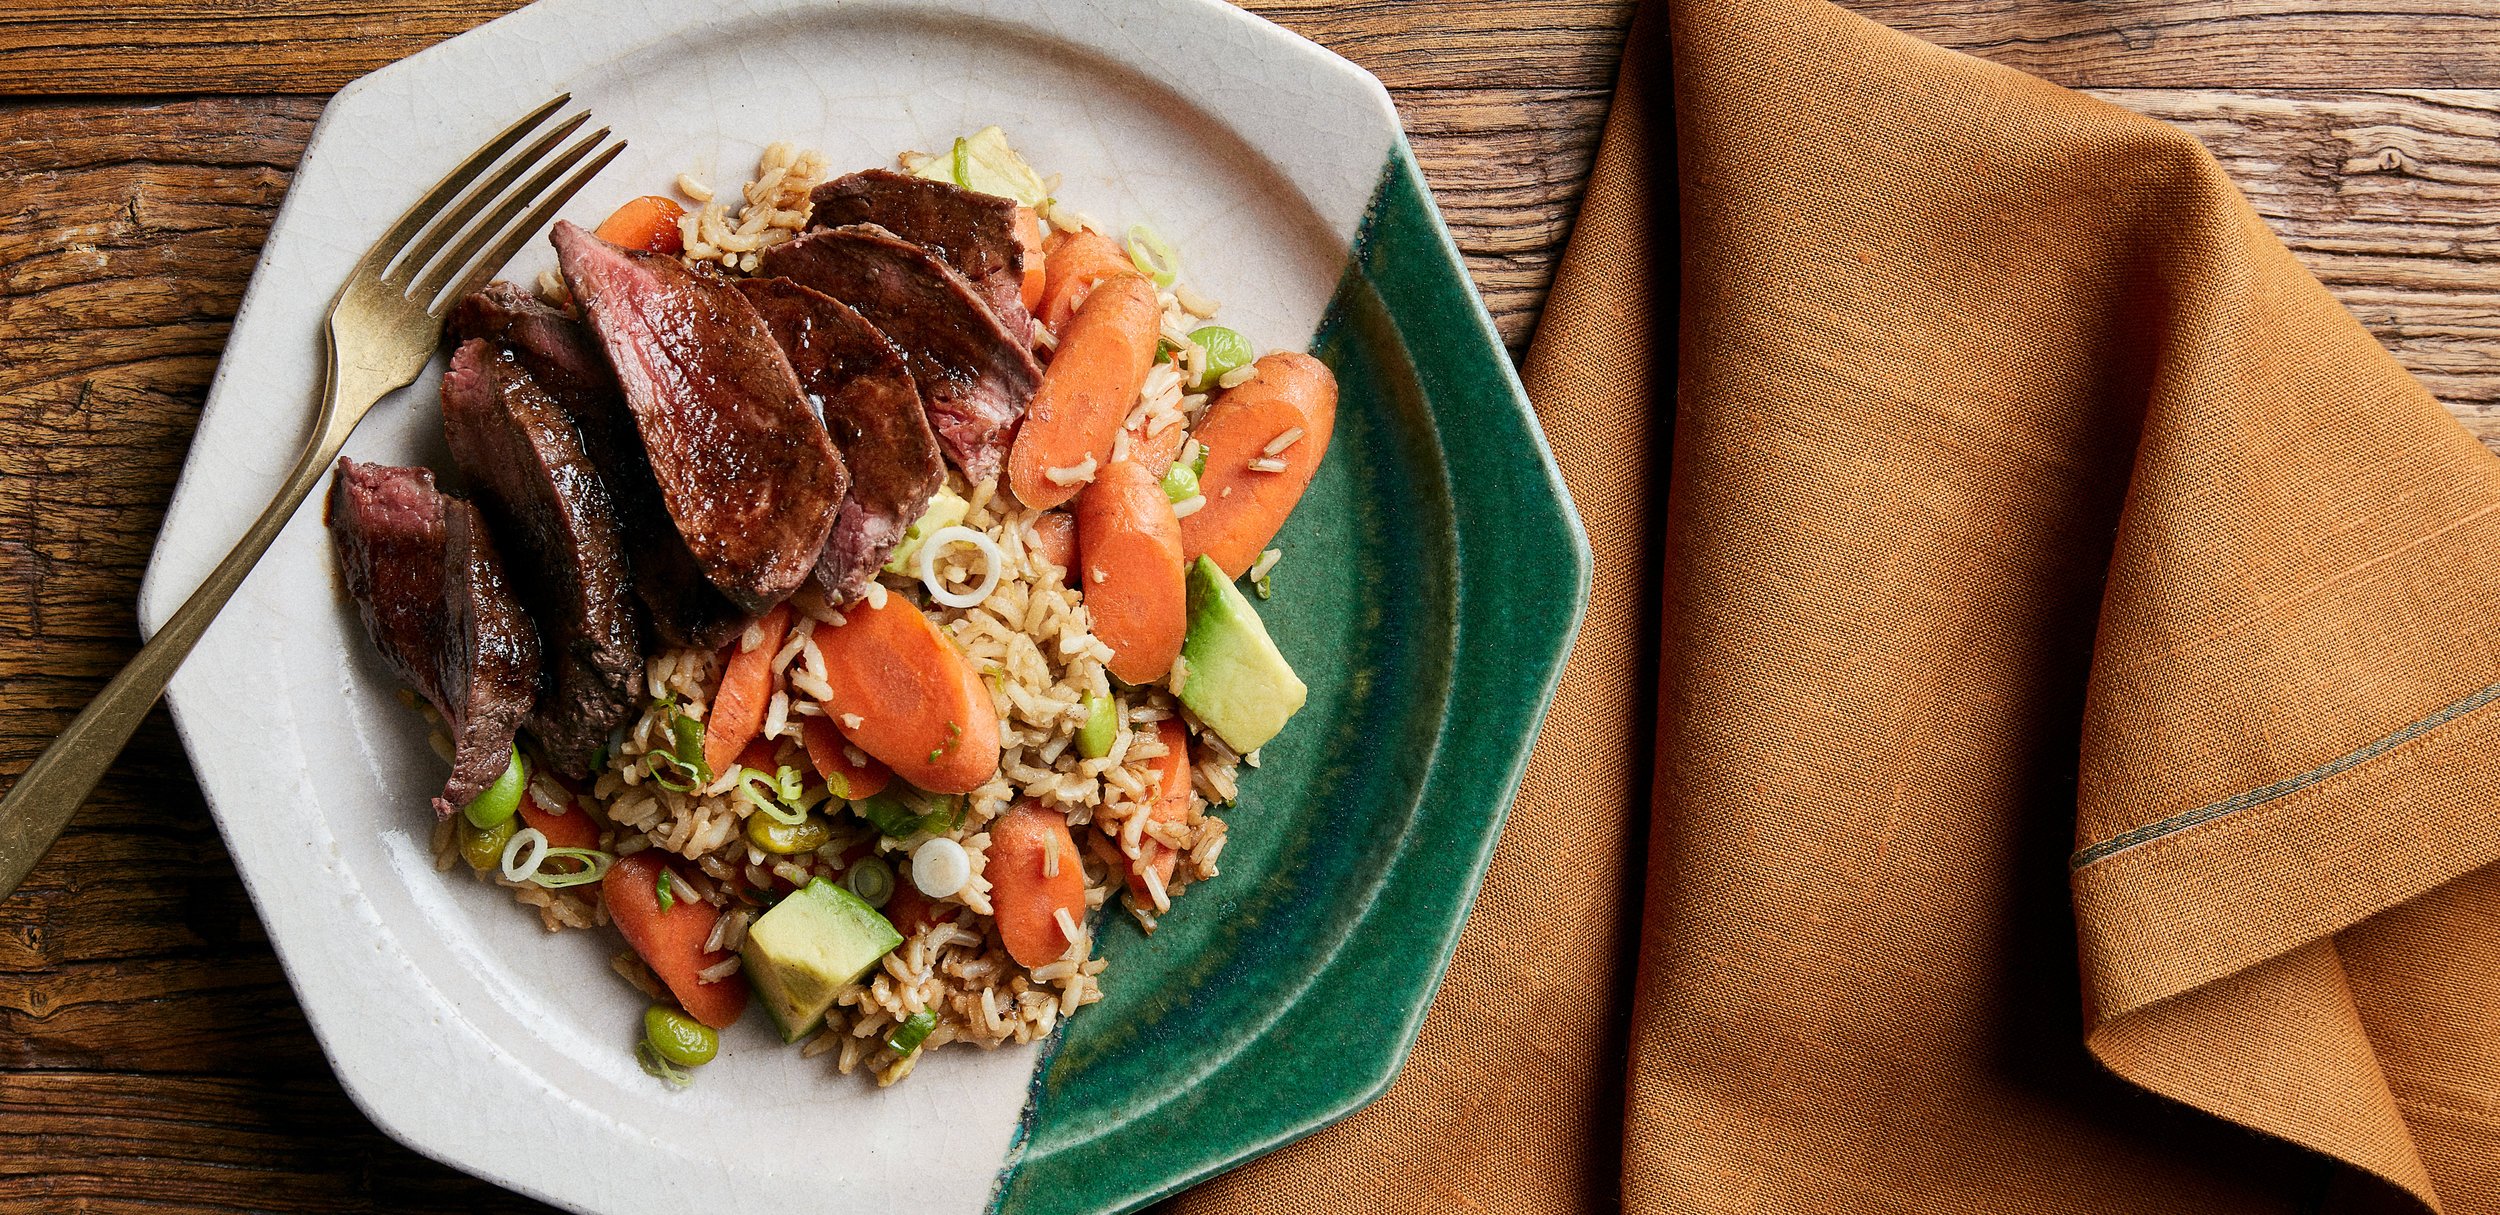 Soy-Glazed Steak with Carrot, Avocado, and Edamame — 0012 — HERO (1).jpg